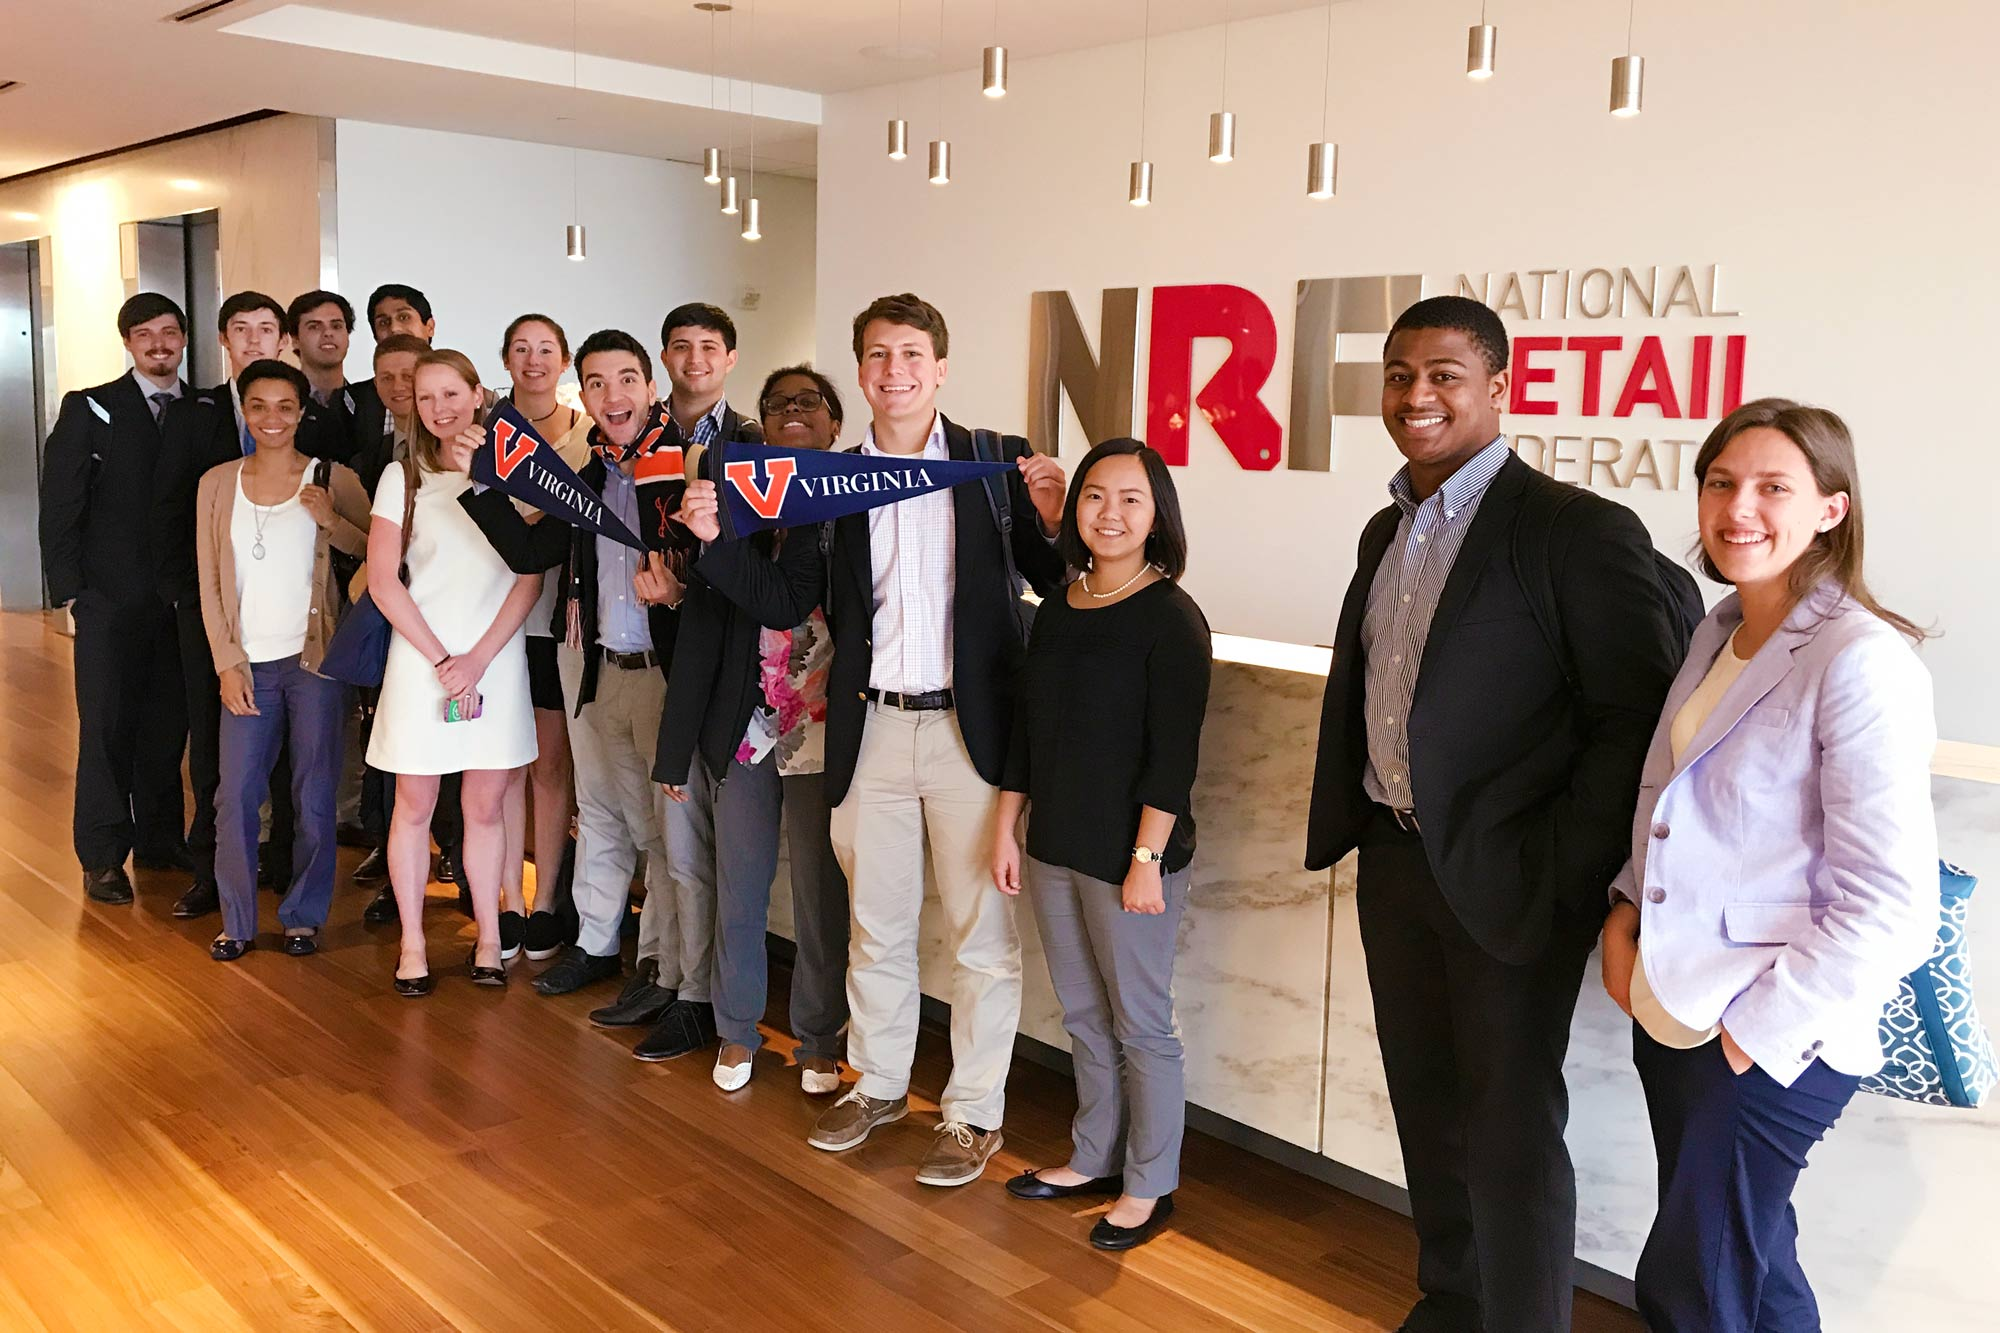 Students enrolled in the UVA Career Center's weeklong UVA D.C. Business Lab learned some business fundamentals, visited businesses and met with D.C.-area alumni last week. (Contributed photo)